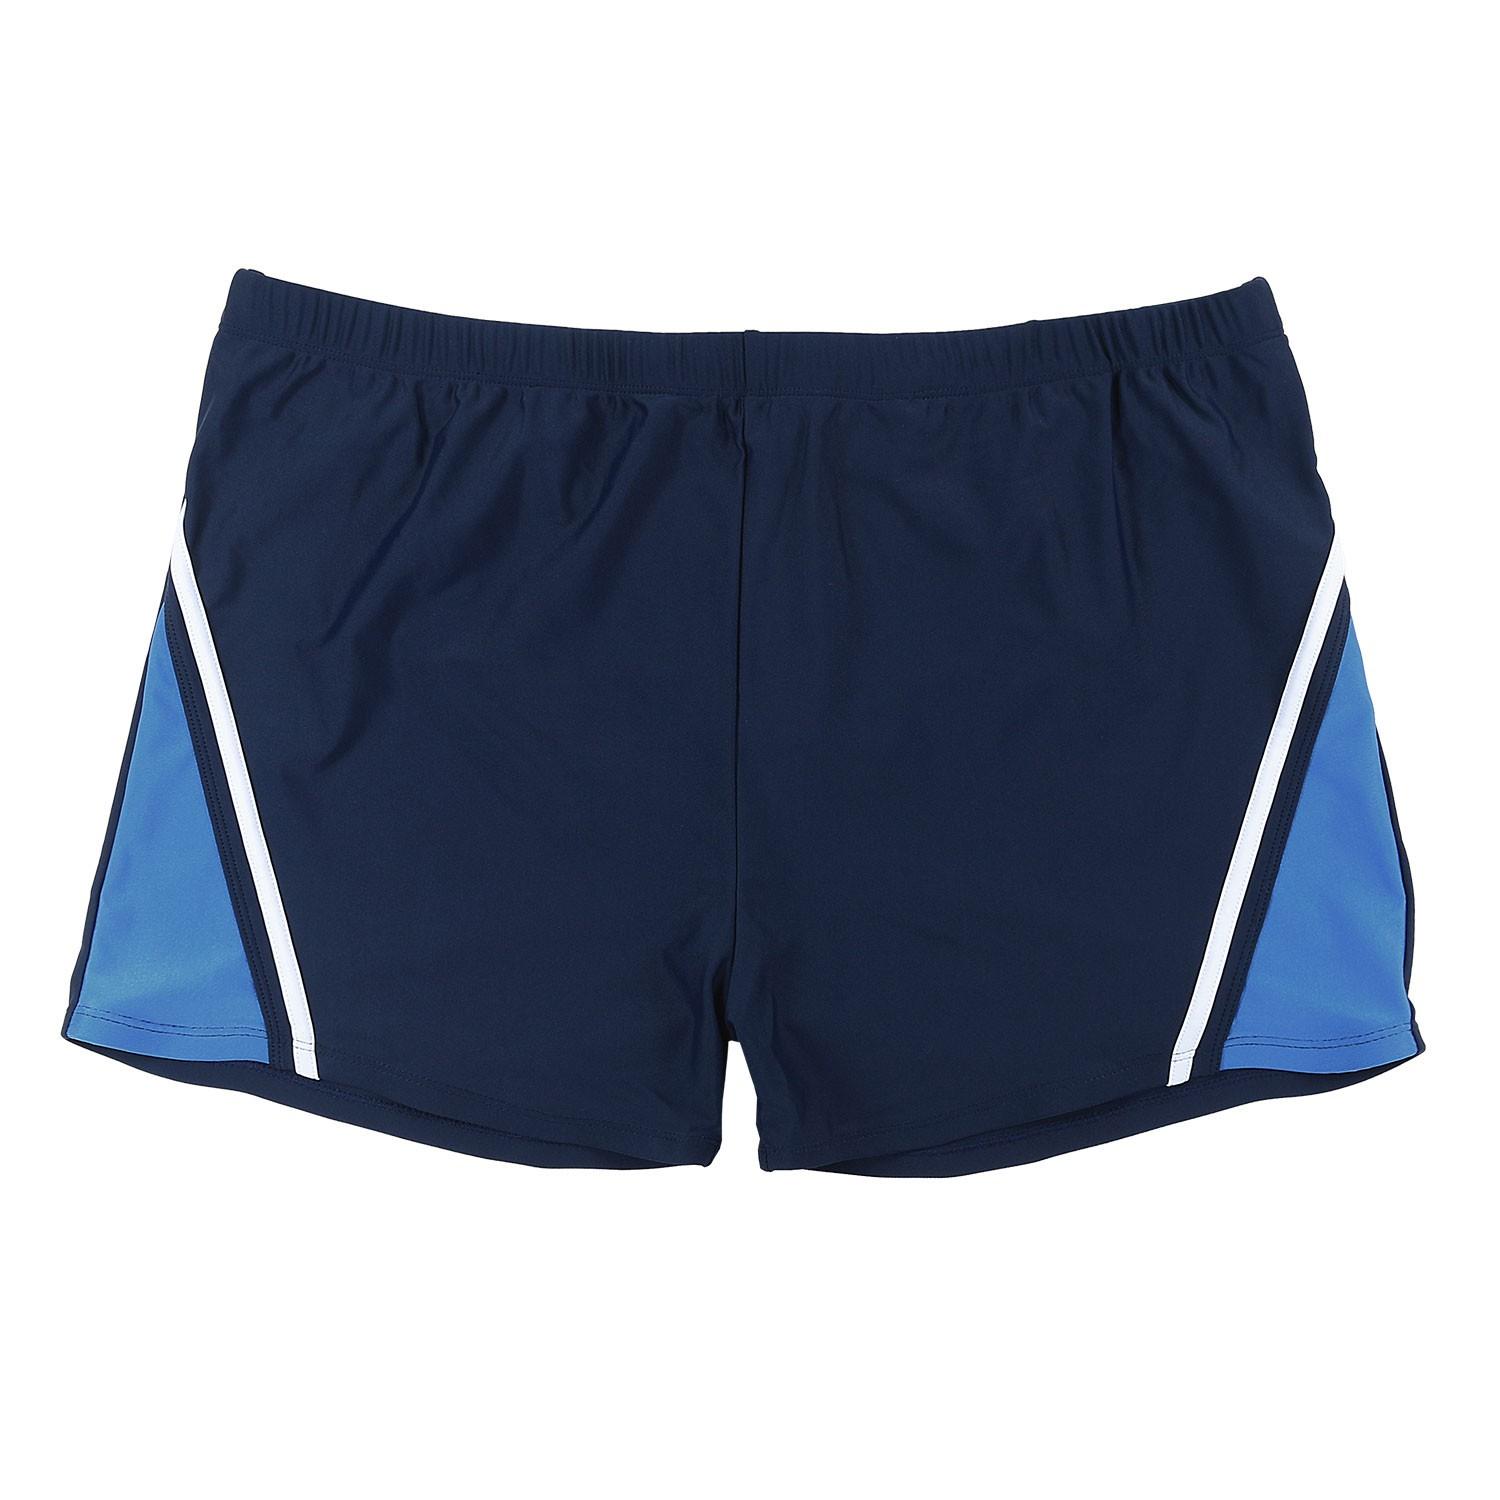 Detail Image to Swimming trunks in navy/royal by Abraxas in oversizes up to 8XL